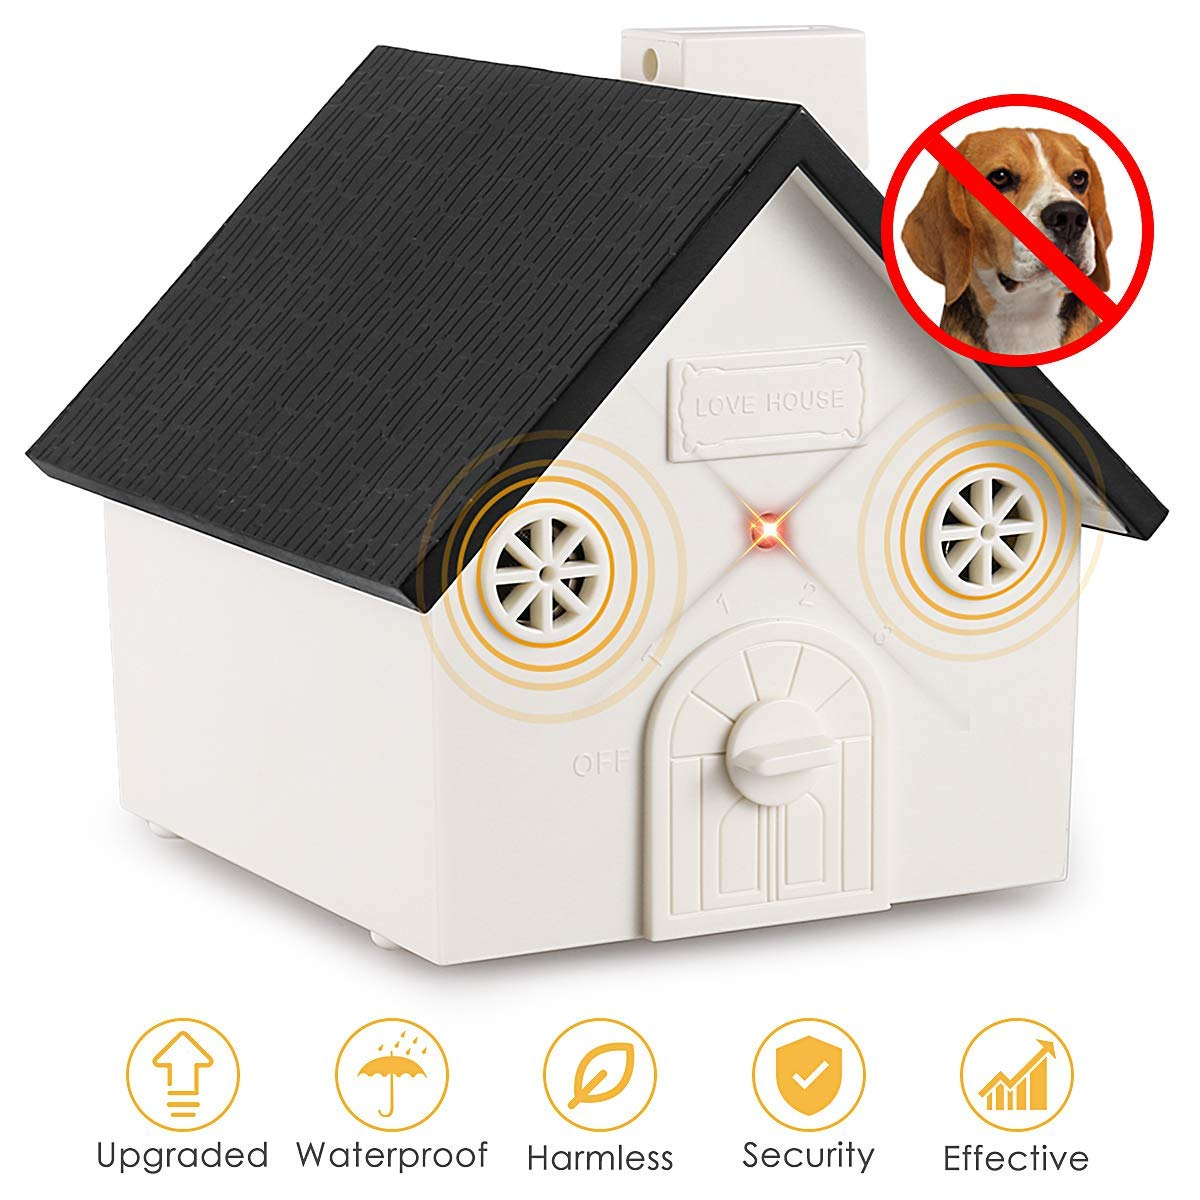 2019 New Bark Box Outdoor Dog Repellent Device with Adjustable Ultrasonic Level Control Safe for Small Medium Large Dogs Bark Control Device Sonic Bark Deterrents Zomma Anti Barking Device